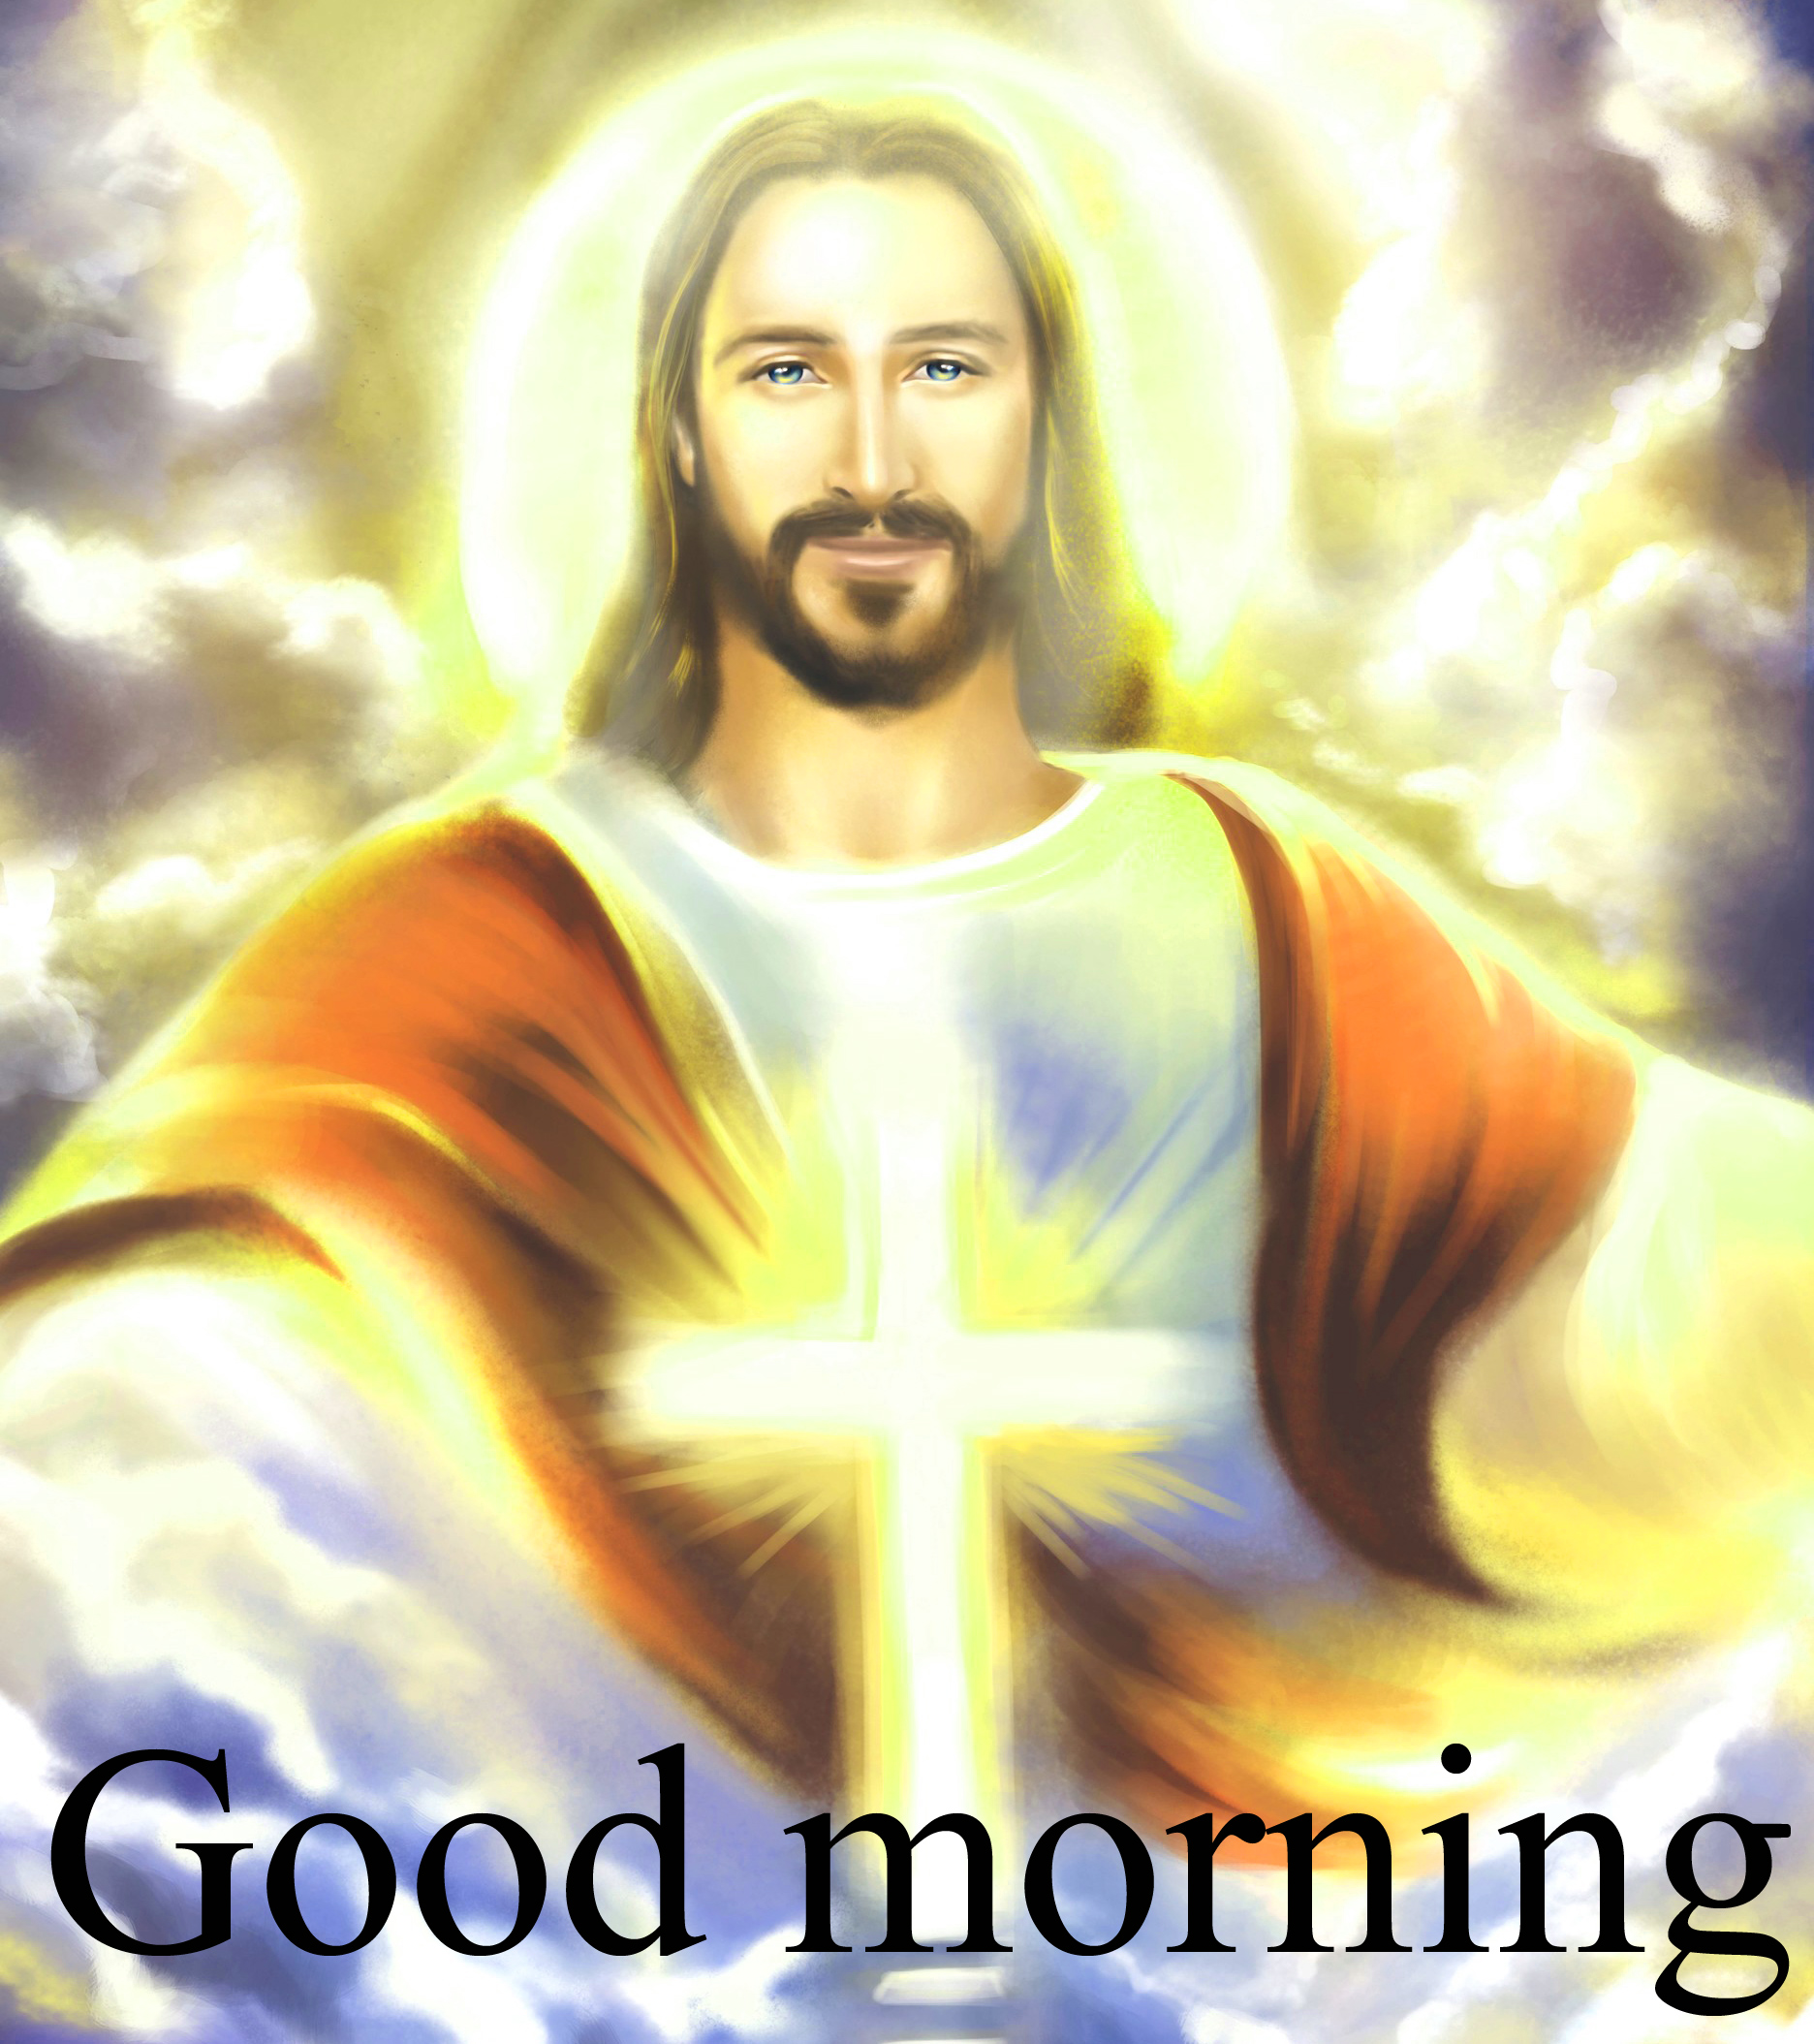 Lord Jesus Good Morning Photo Wallpaper Images Download